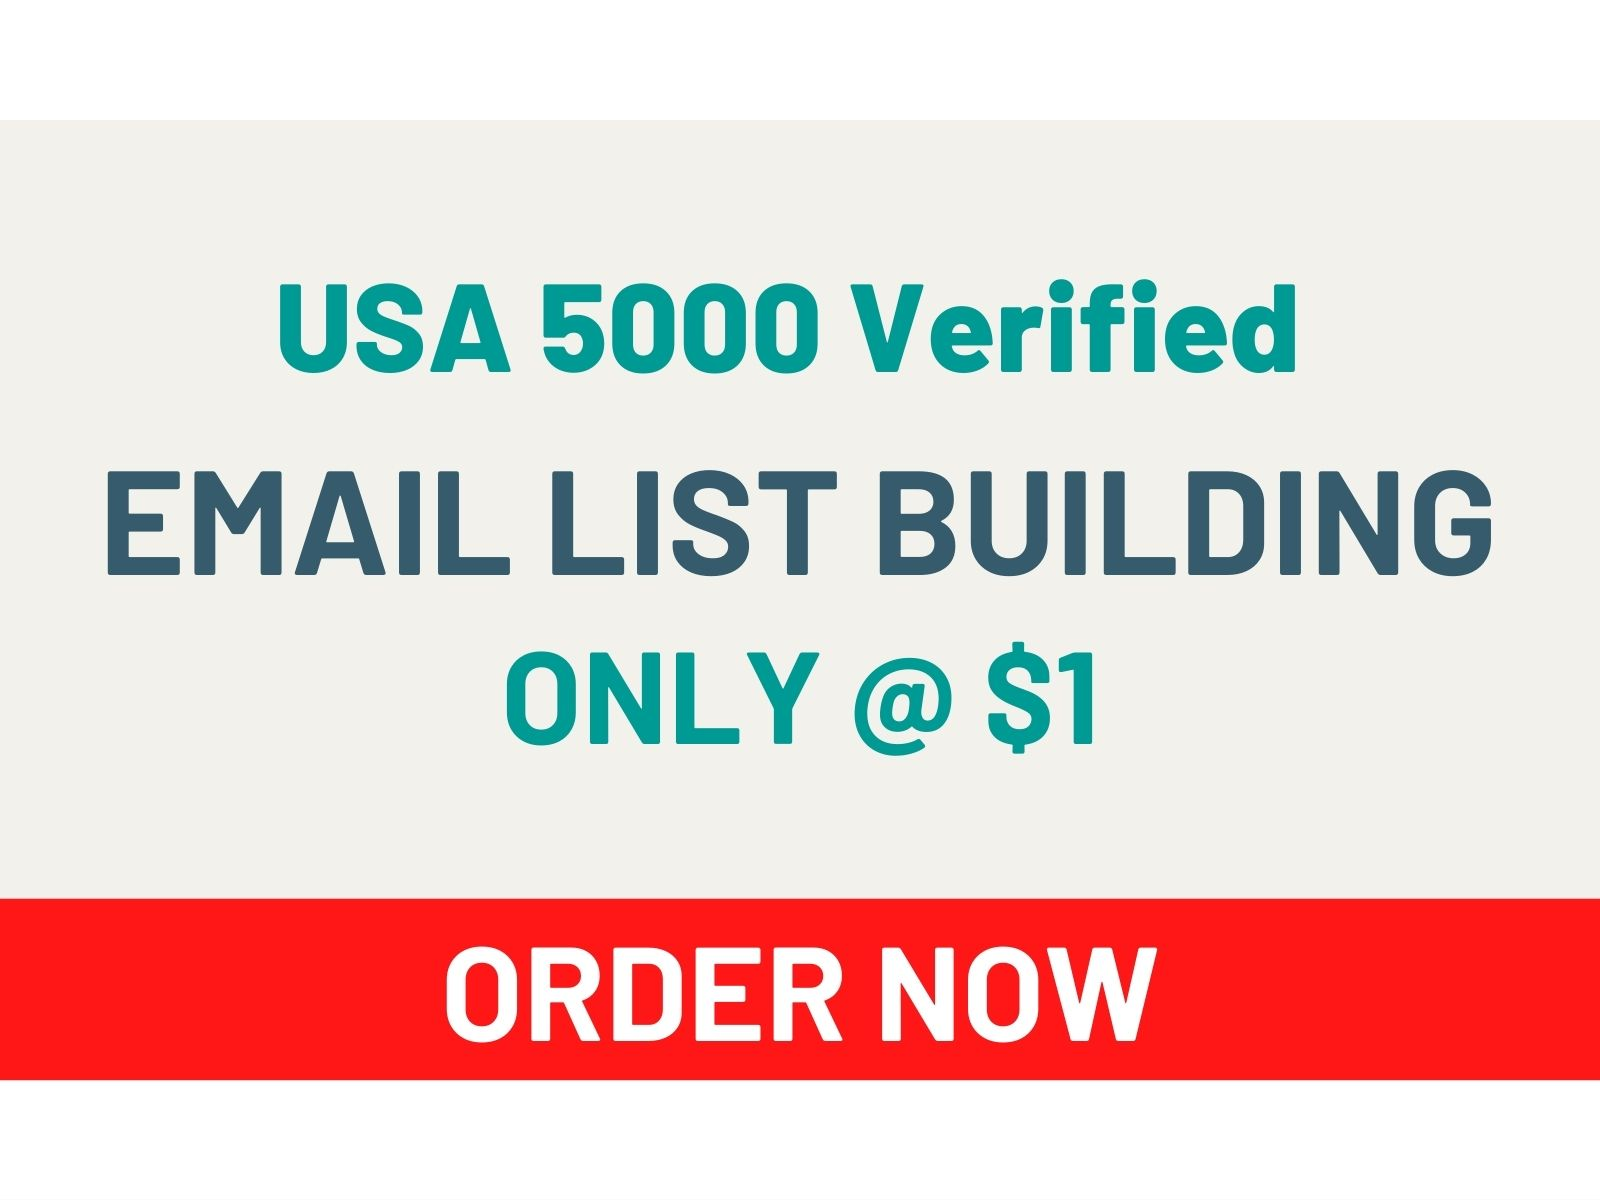 I Will Give You USA 5000 Verified Email List